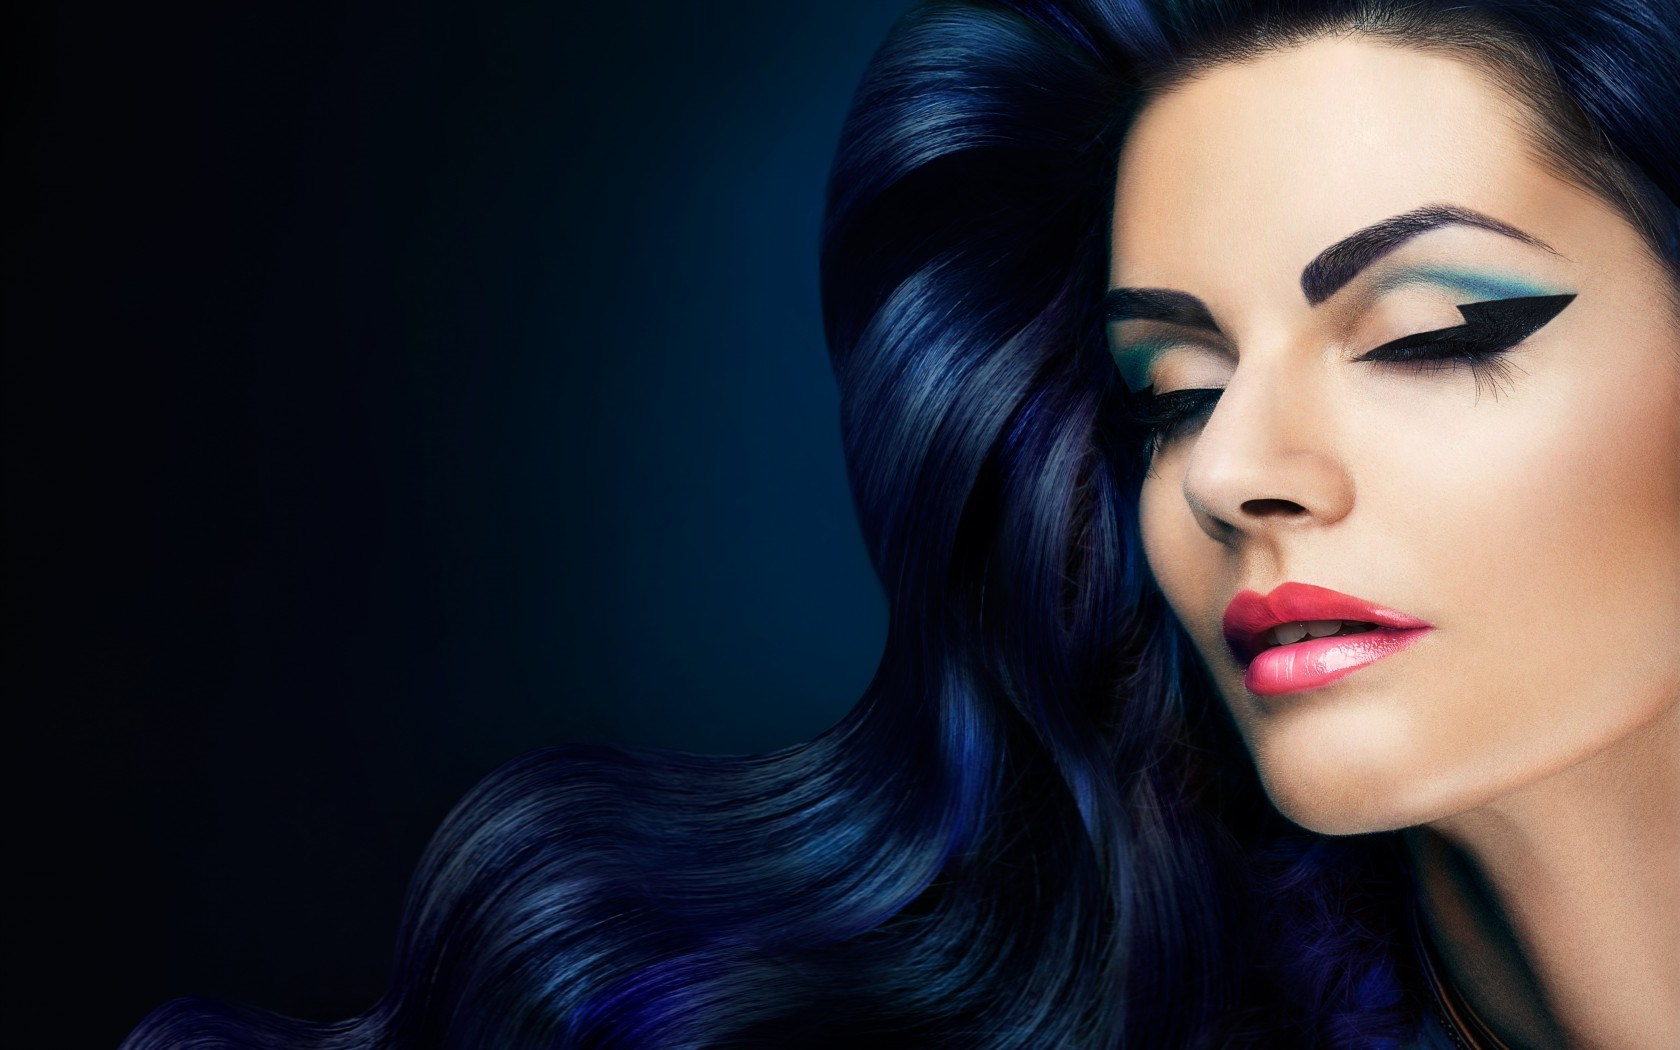 Model Make Up Trend 2014 Dark Blue Hair